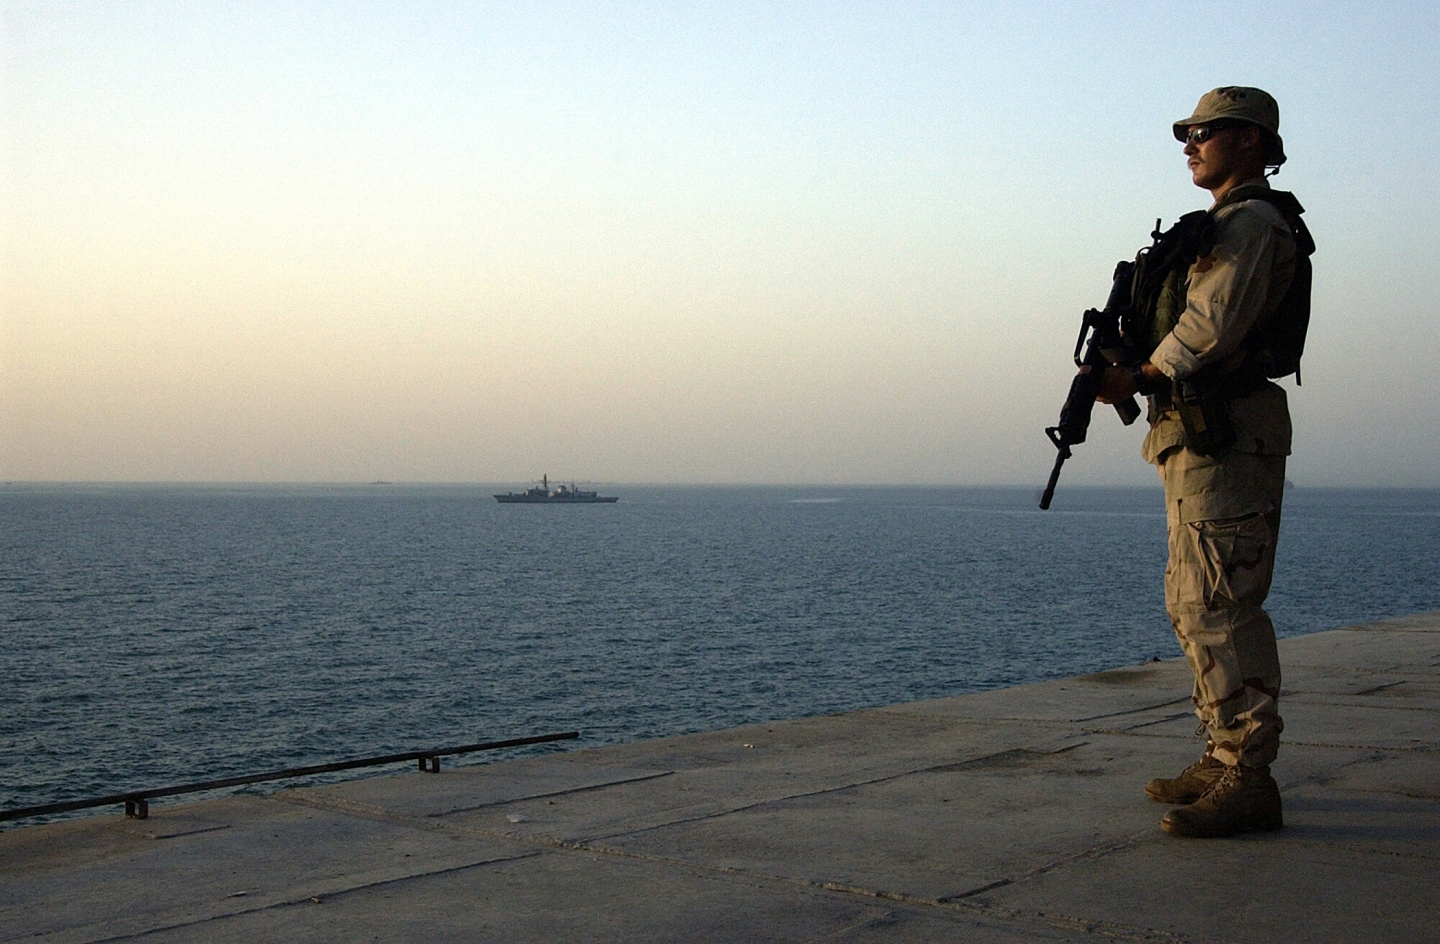 Arabian Gulf (Aug. 2, 2004) - Master-at-Arms 2nd Class Simmons, assigned to Mobile Security Detachment Two One (MSD-21), stands topside security watch aboard the Al Basrah Oil Terminal (ABOT). The ABOT and Khawr Al Amaya Oil Terminal (KAAOT) are currently under the protection of Task Force 58, coalition and Iraqi security forces. U.S. Navy photo by Photographer's Mate 2nd Class Aaron Peterson